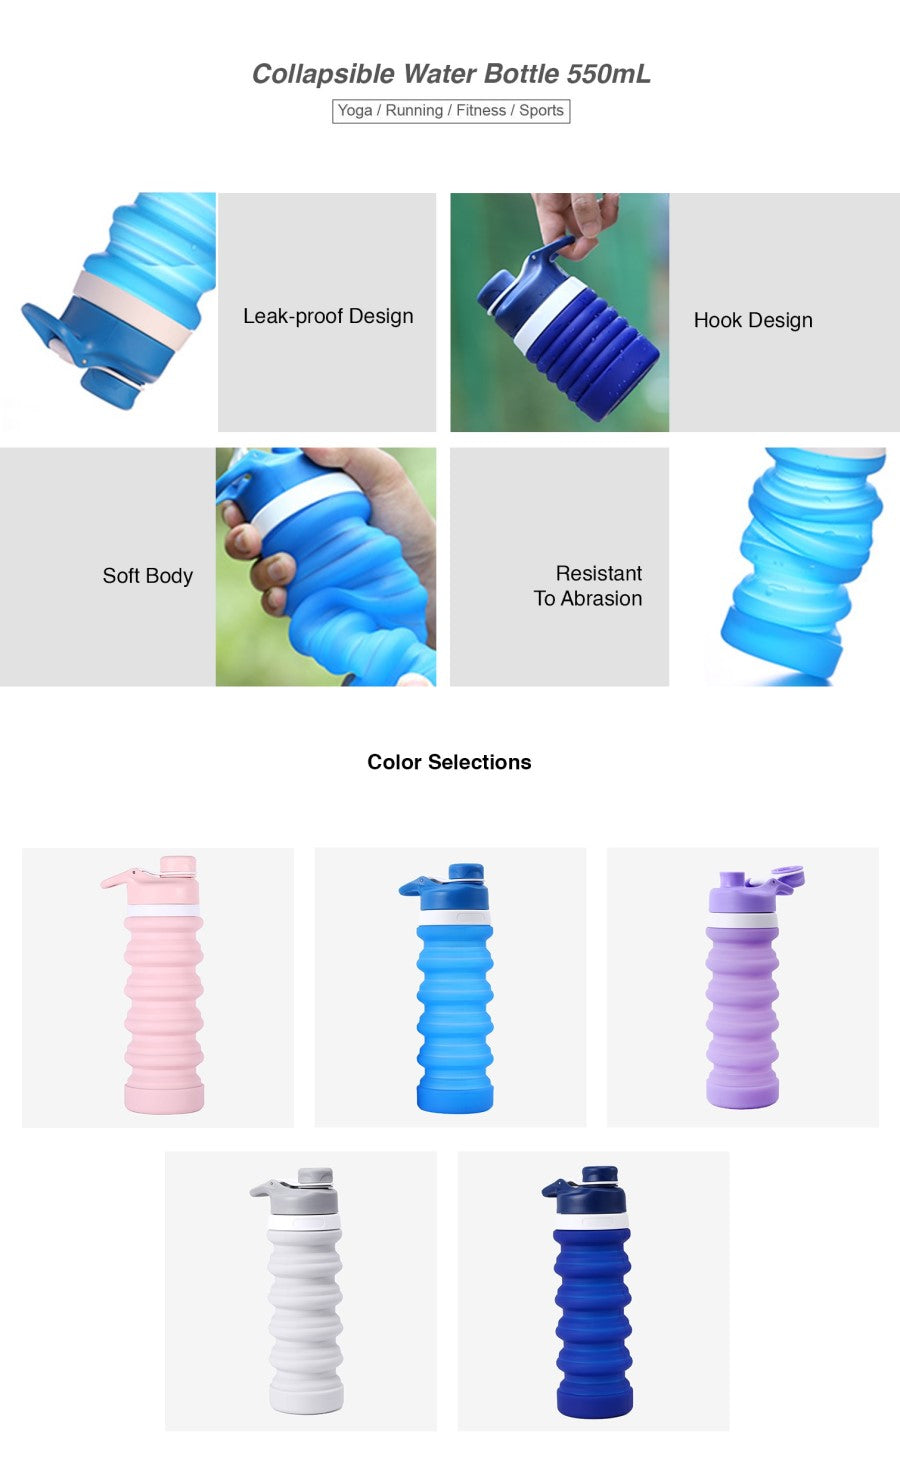 Collapsible Water Bottle 550mL